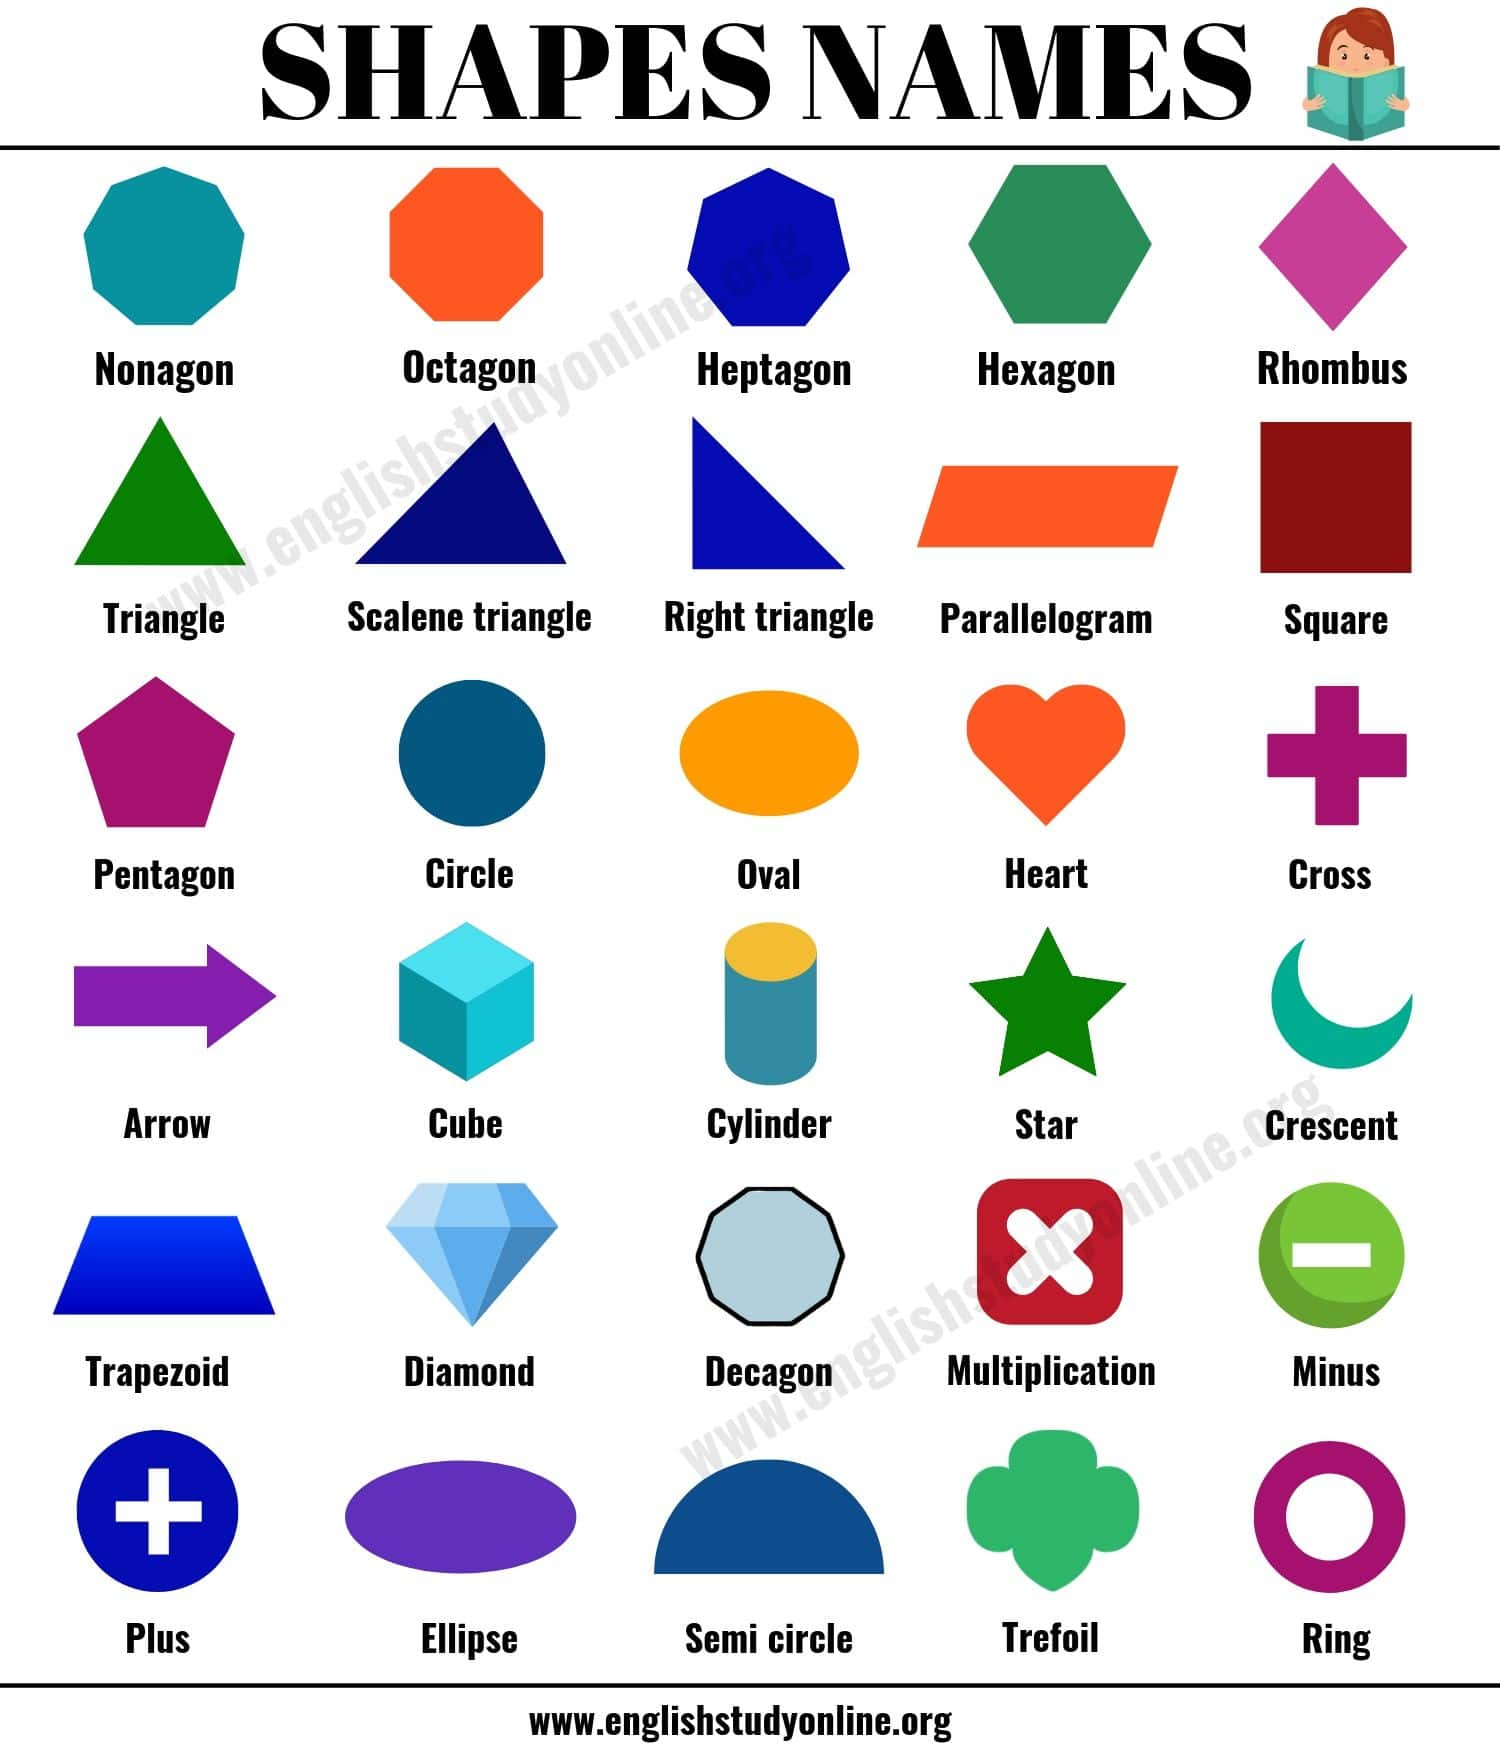 Shapes Names 30 Popular Names Of Shapes With Esl Image